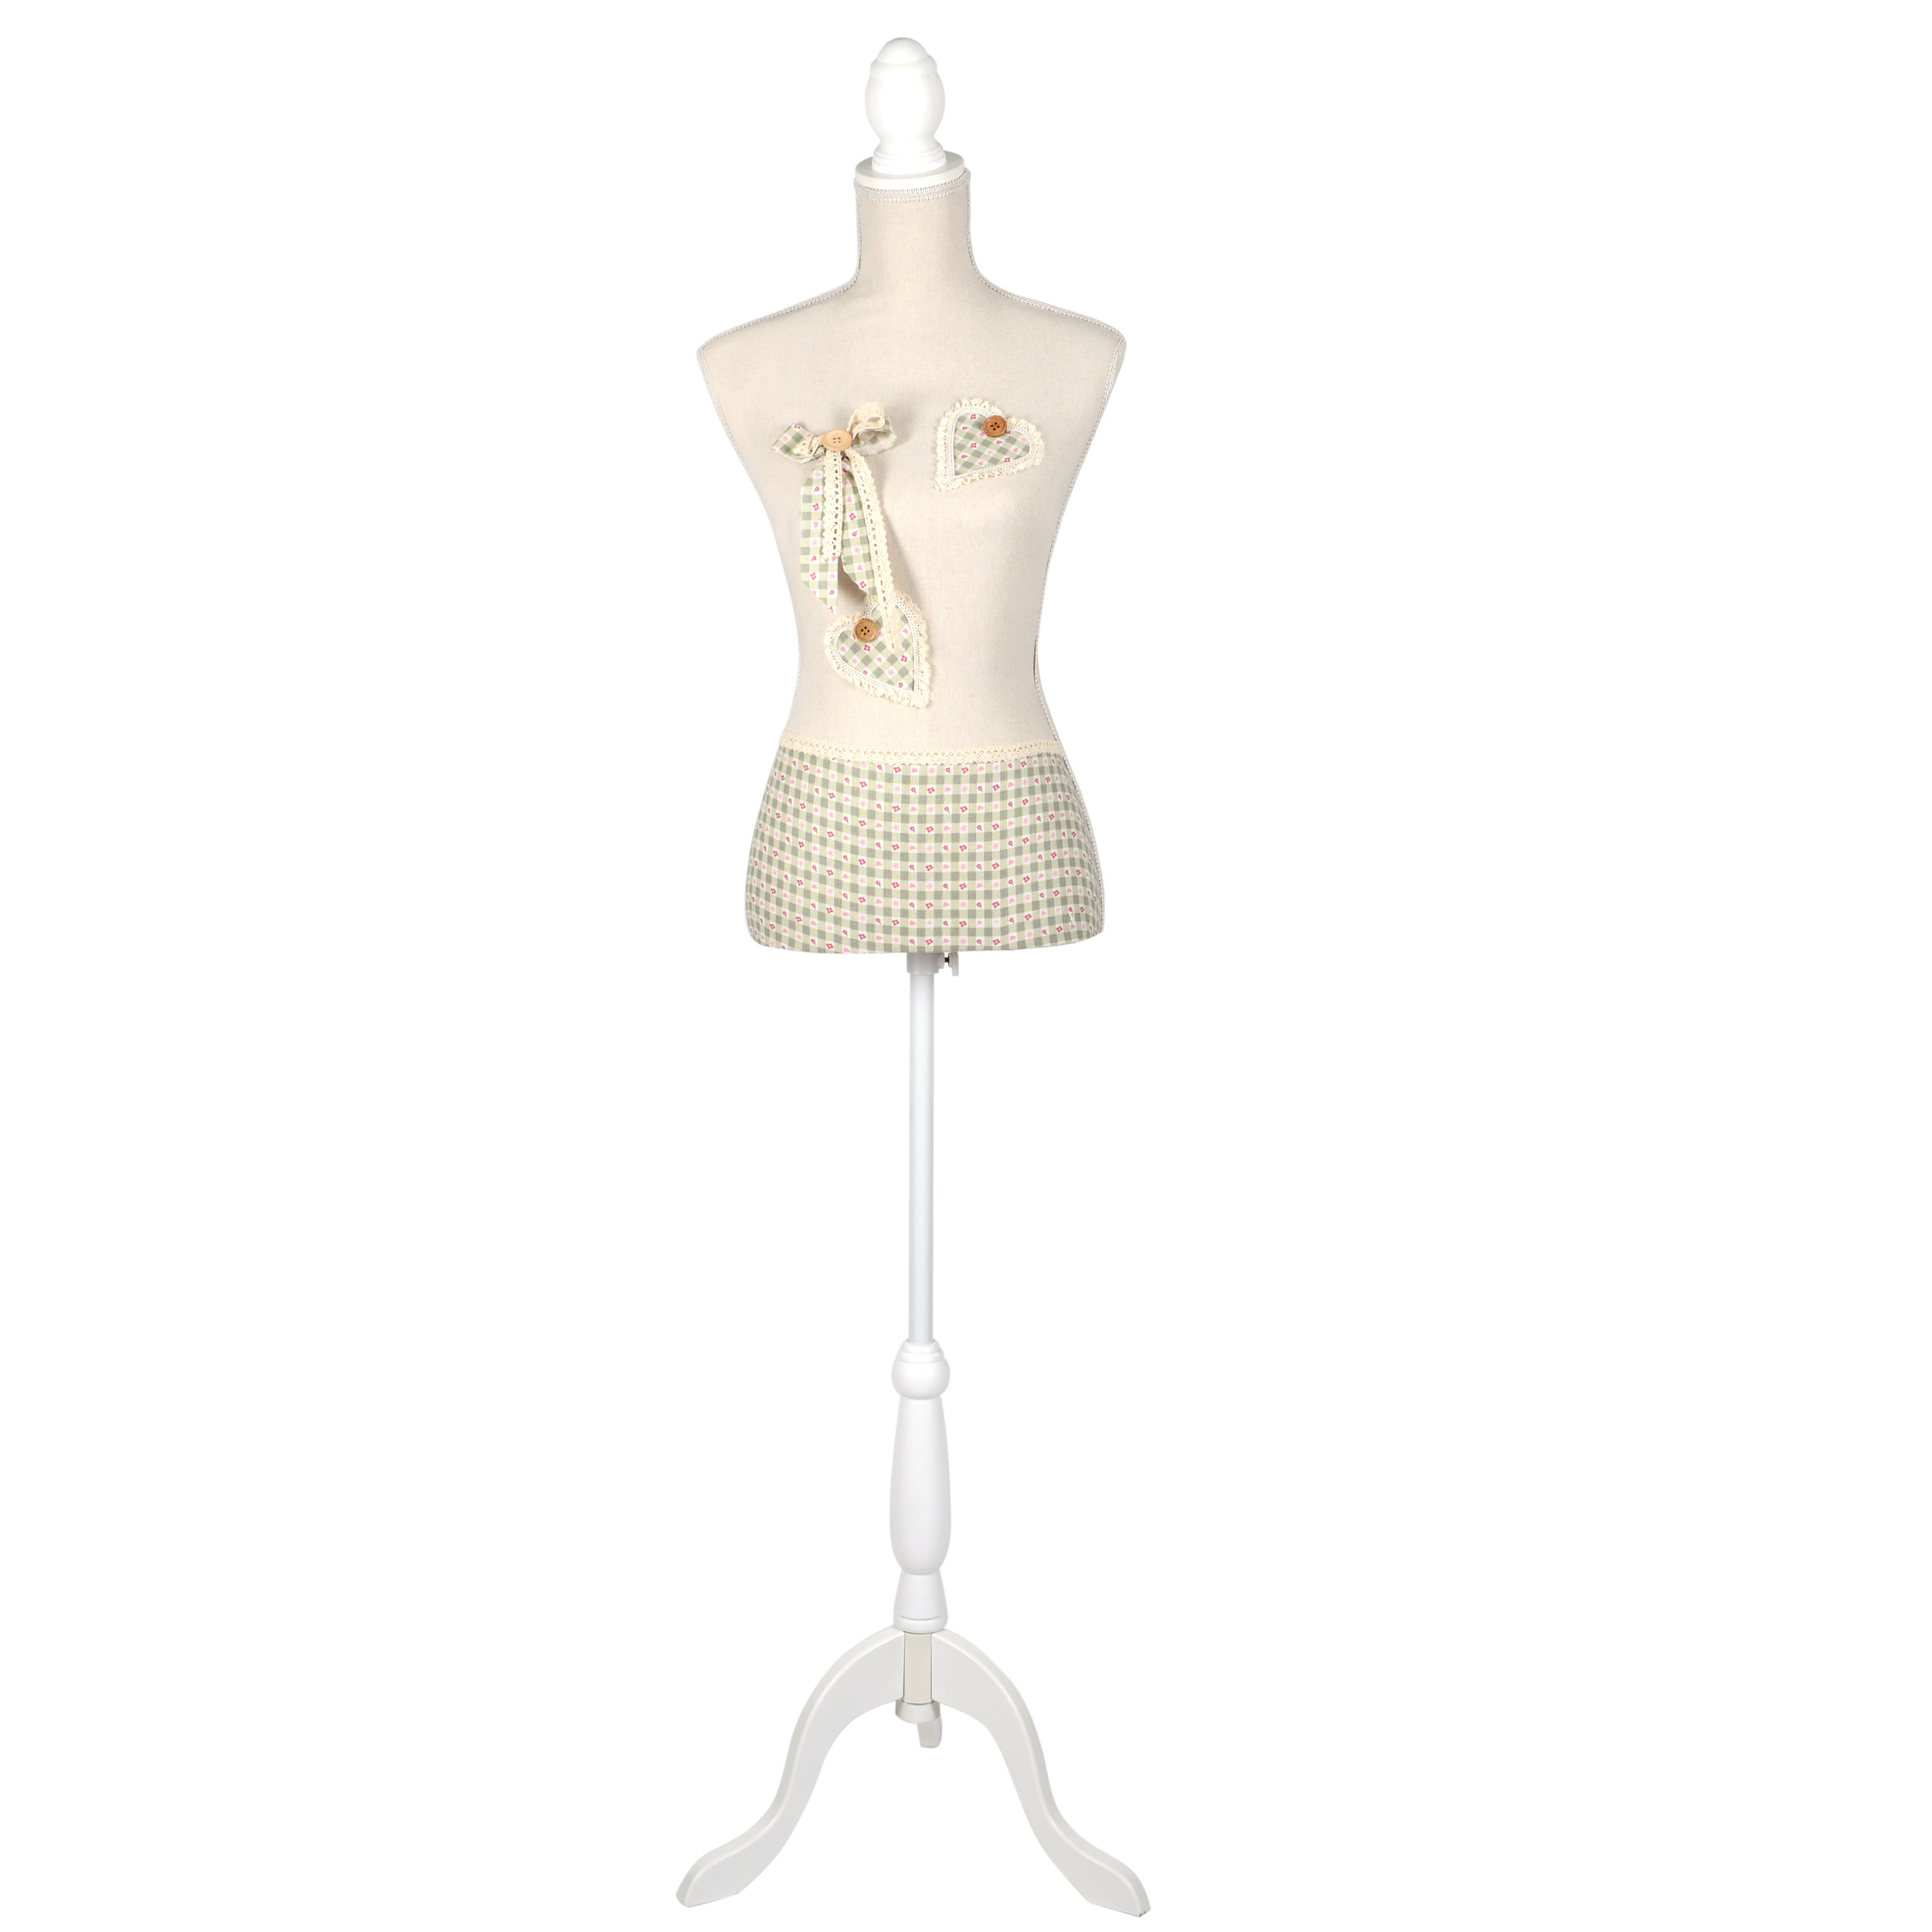 €100 POLYRESIN FLOOR MANNEQUIN W/FABRIC COVER 34X165